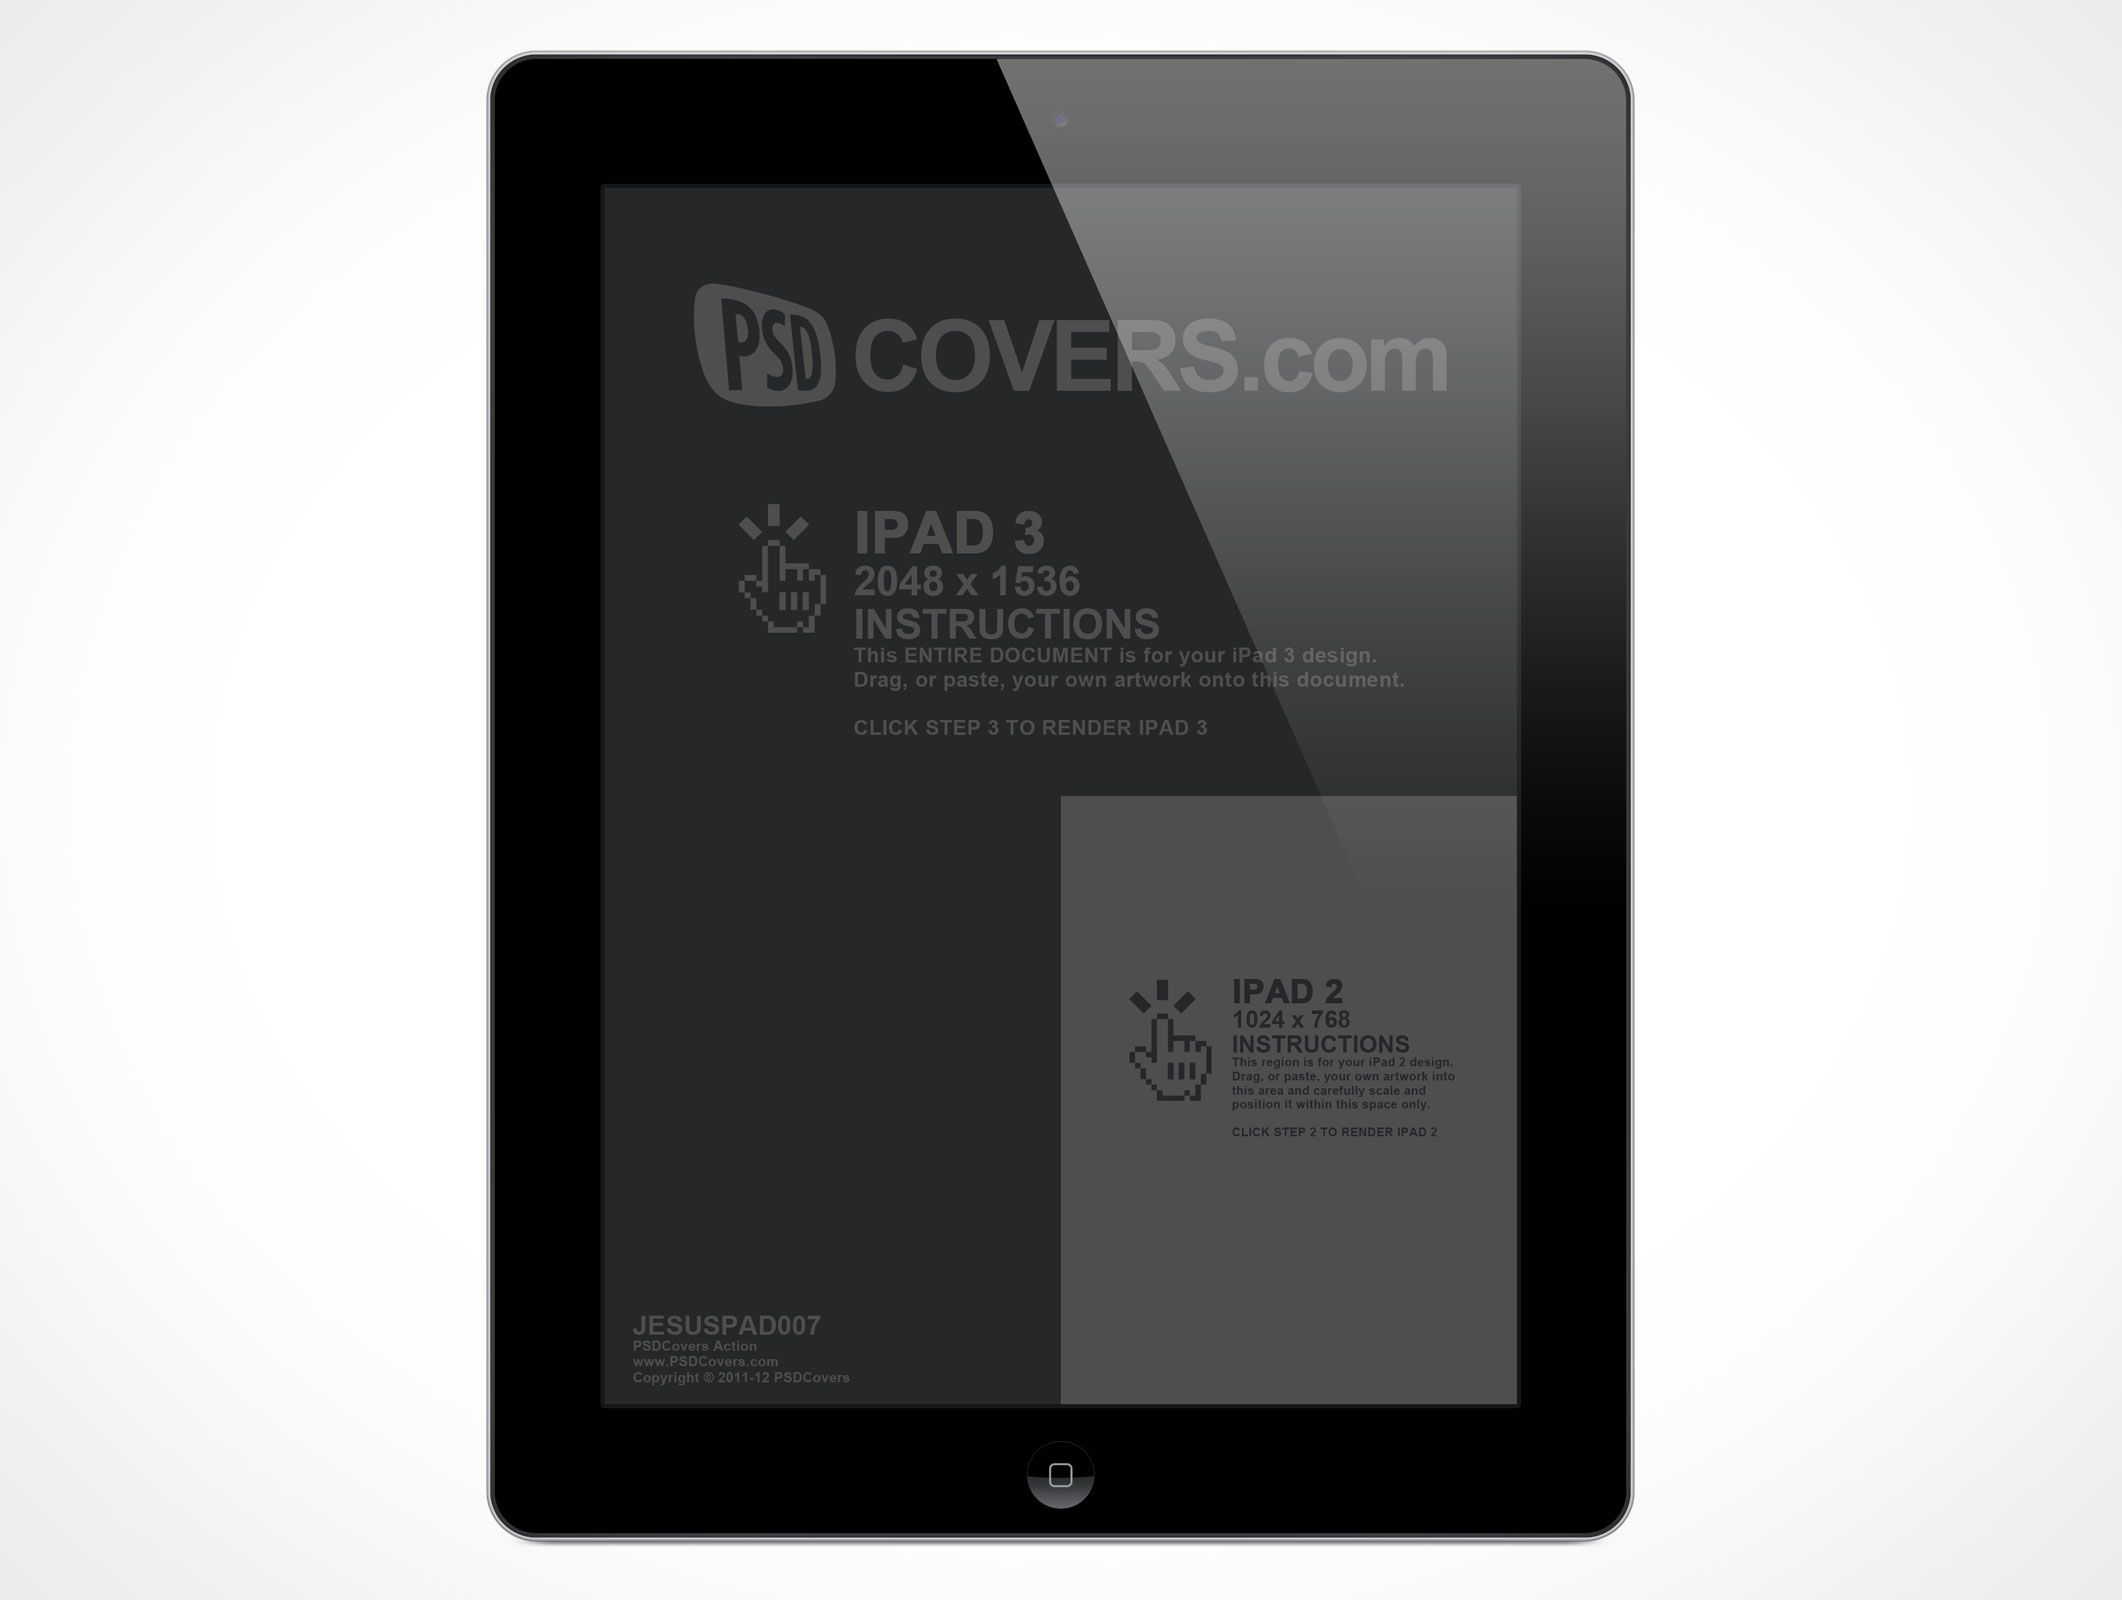 Jesuspad007 Is A Front View Shot Of The New Ipad This Psd Mockup Fully Supports Rendering Your Apple Ipad2 At 1024 768 Or Ipad3 At 2048 Psd Mockup Psd Mockup